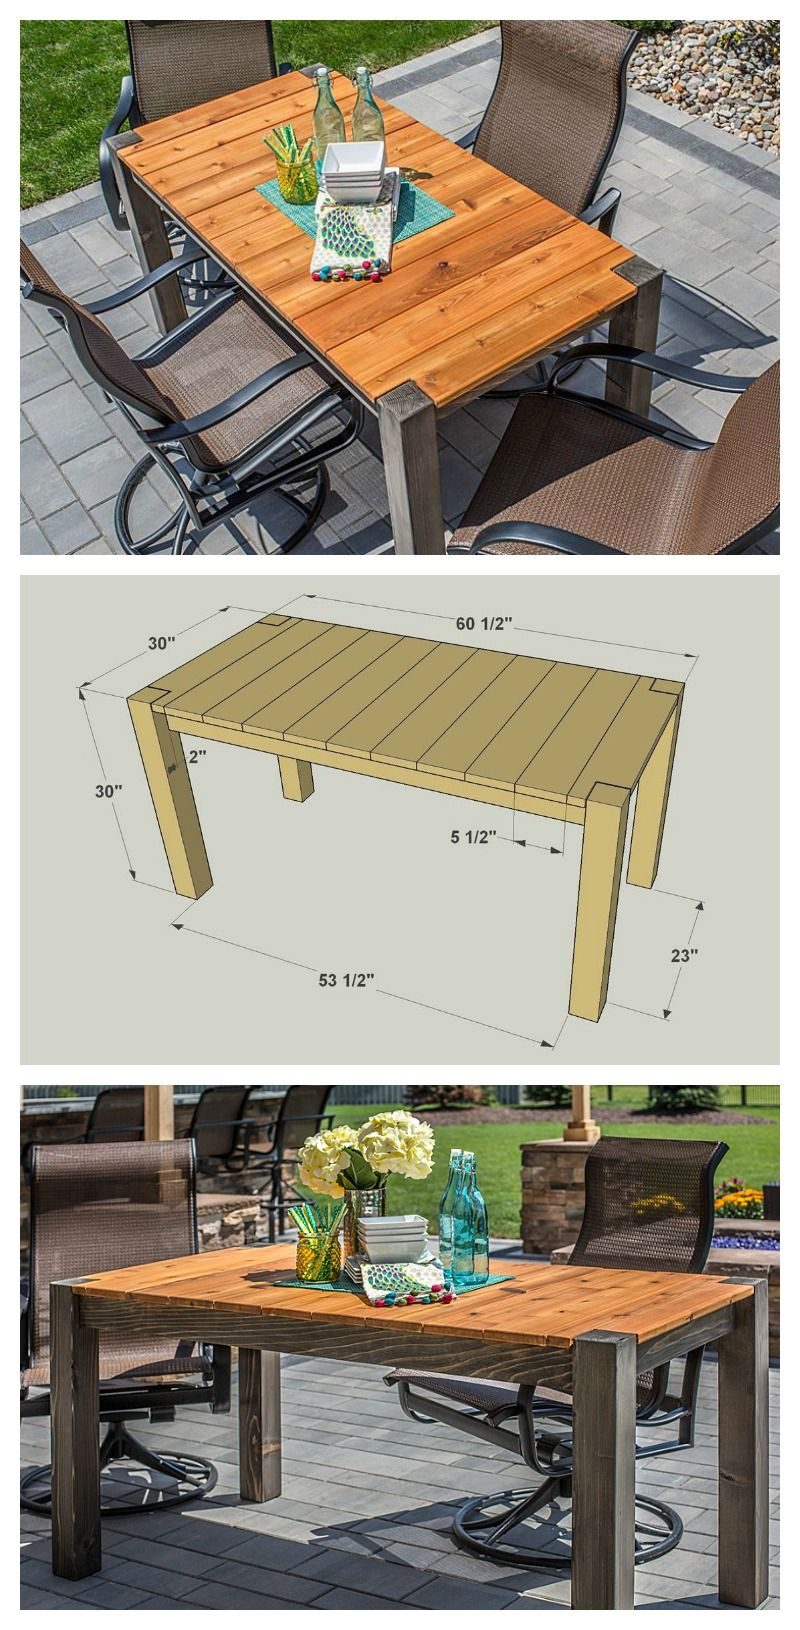 Diy cedar patio table free plans at buildsomething kreg diy cedar patio table free plans at buildsomething geotapseo Image collections